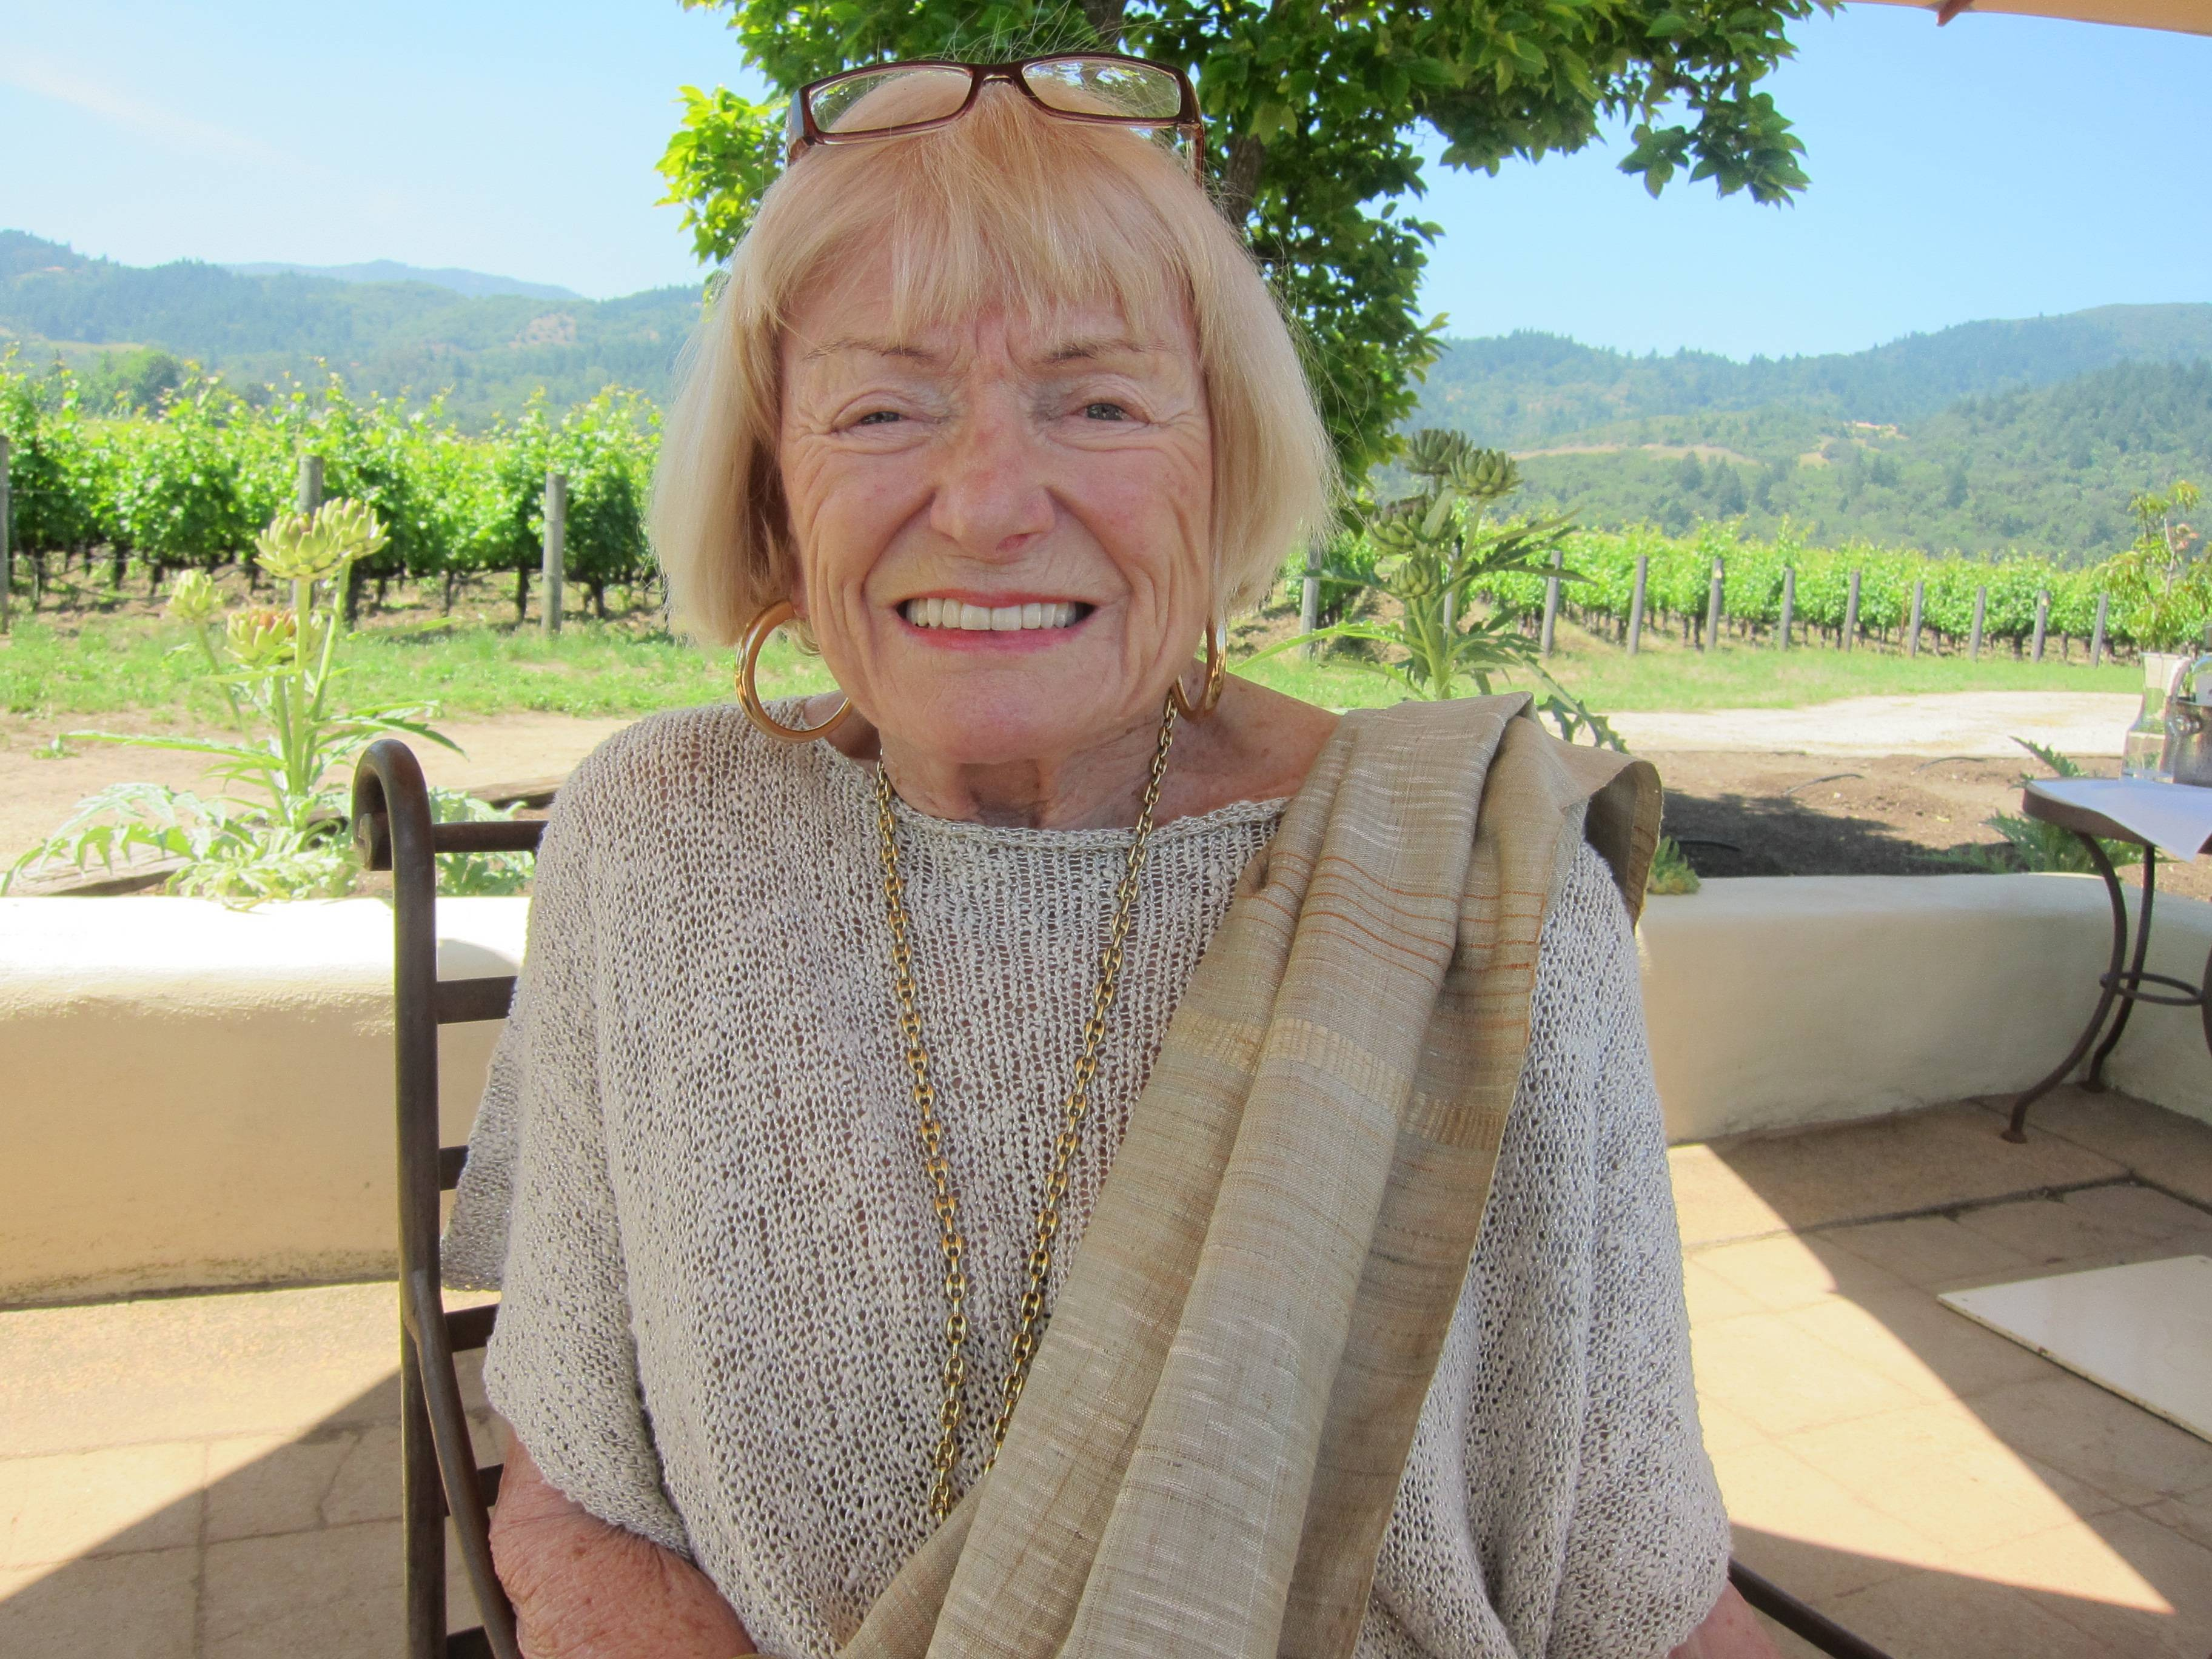 Haute 100 San Francisco Update: Margrit Mondavi's Annual Robert Mondavi Winery Summer Concert Series is Back